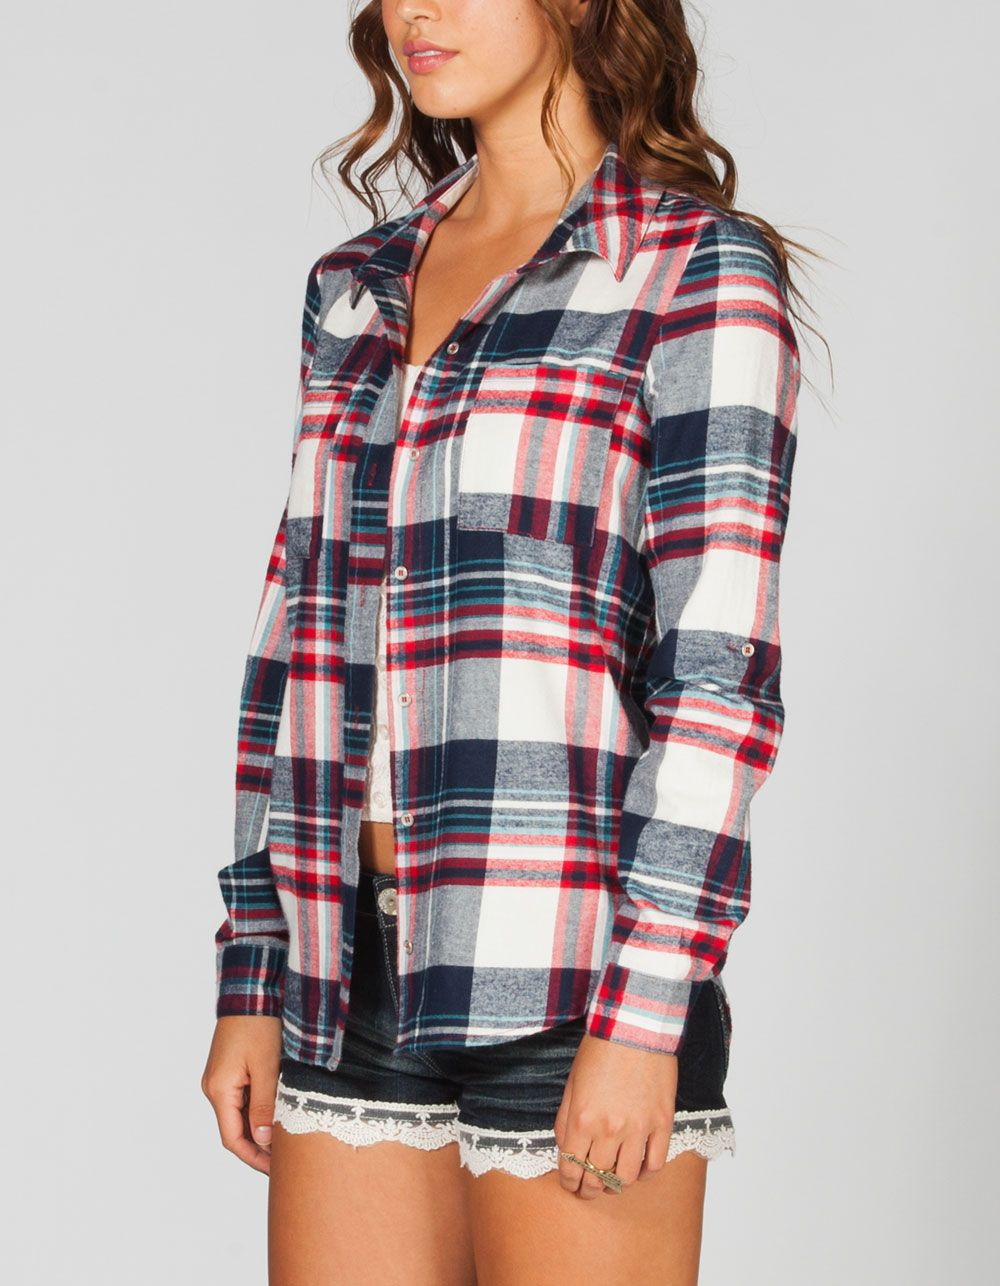 Flannel shirt with shorts  FULL TILT Womens Washed Flannel Shirt And I have those shorts